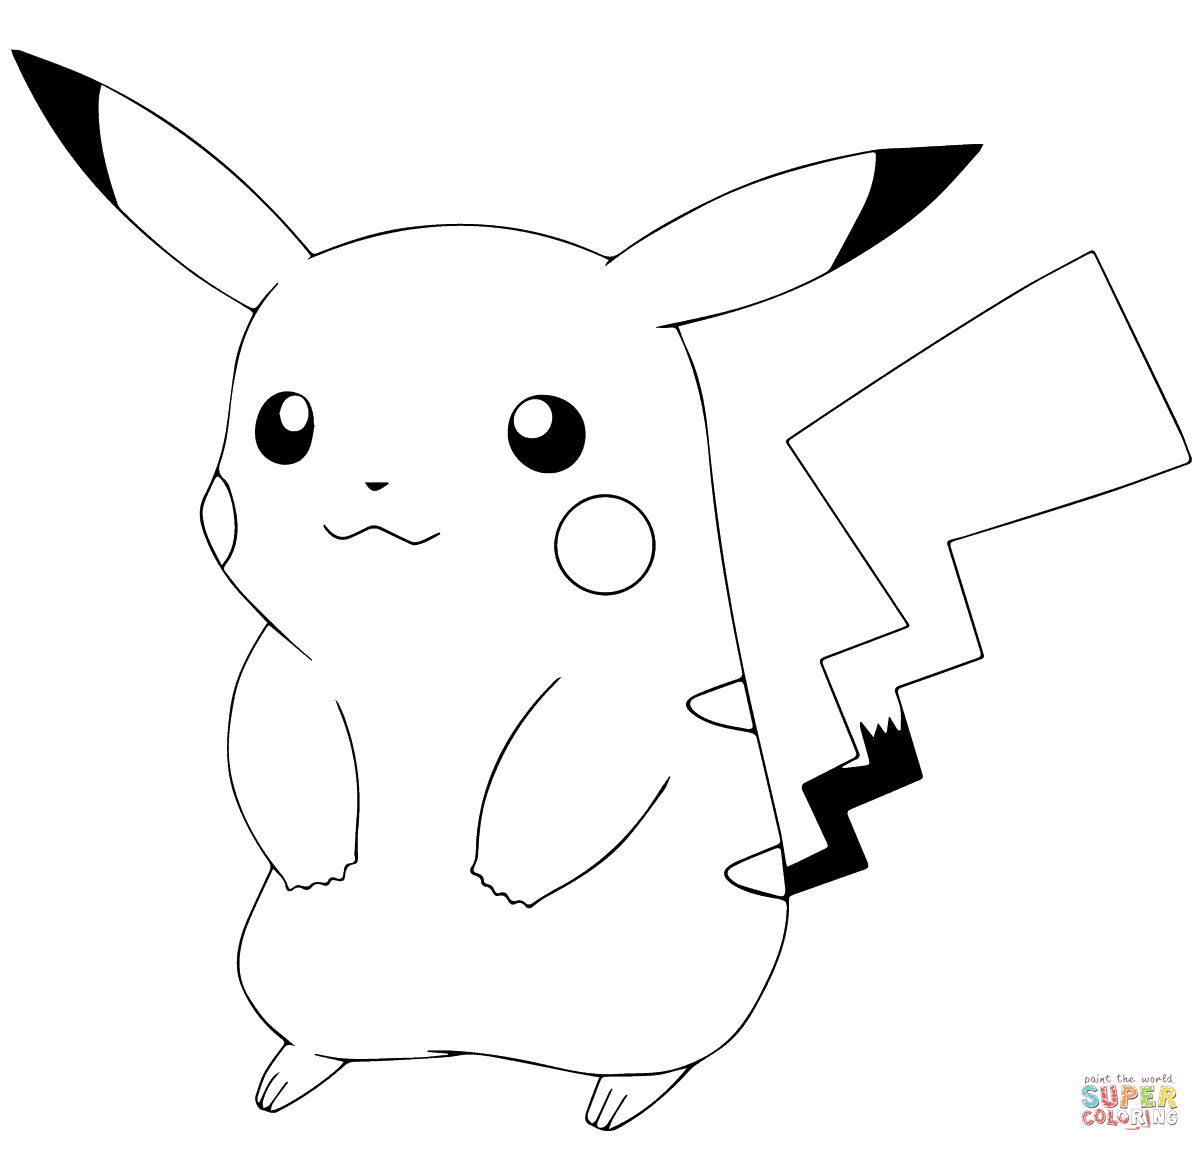 pikachu drawing coloring pages pikachu coloring pages to download and print for free pikachu pages coloring drawing